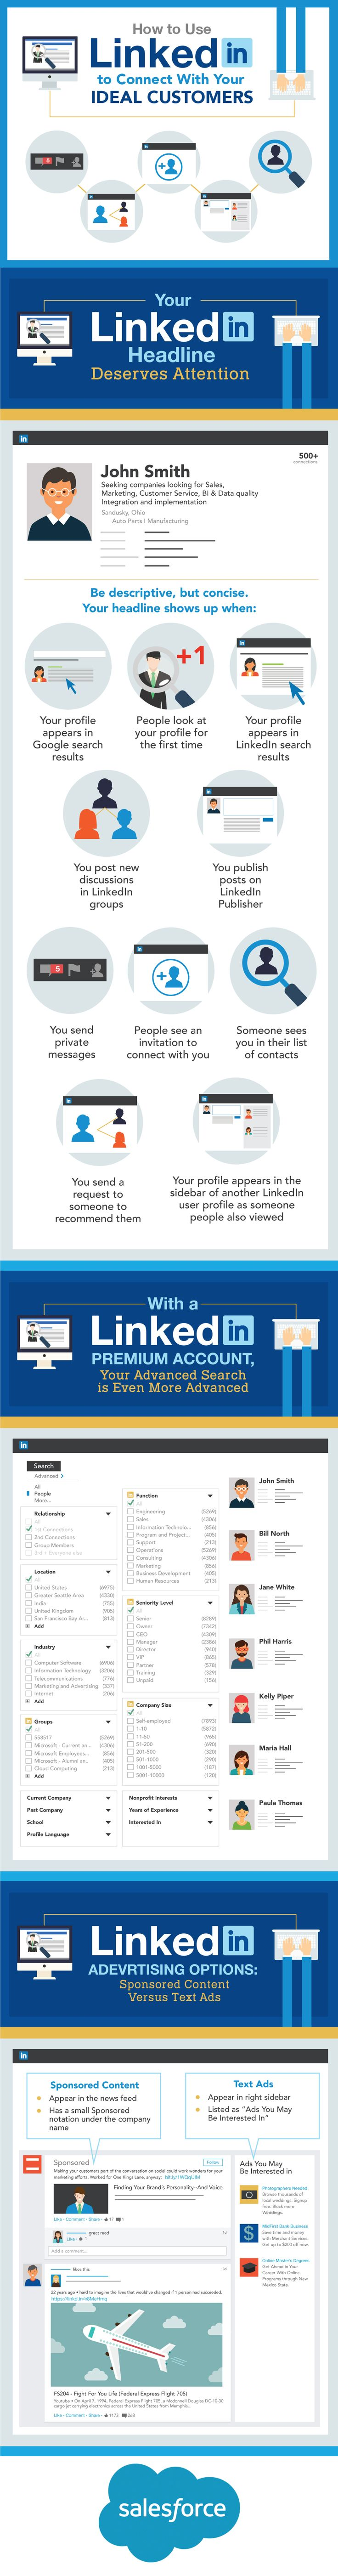 How To Use Linkedin To Connect With Your Ideal Customers [infographic]   Social Media